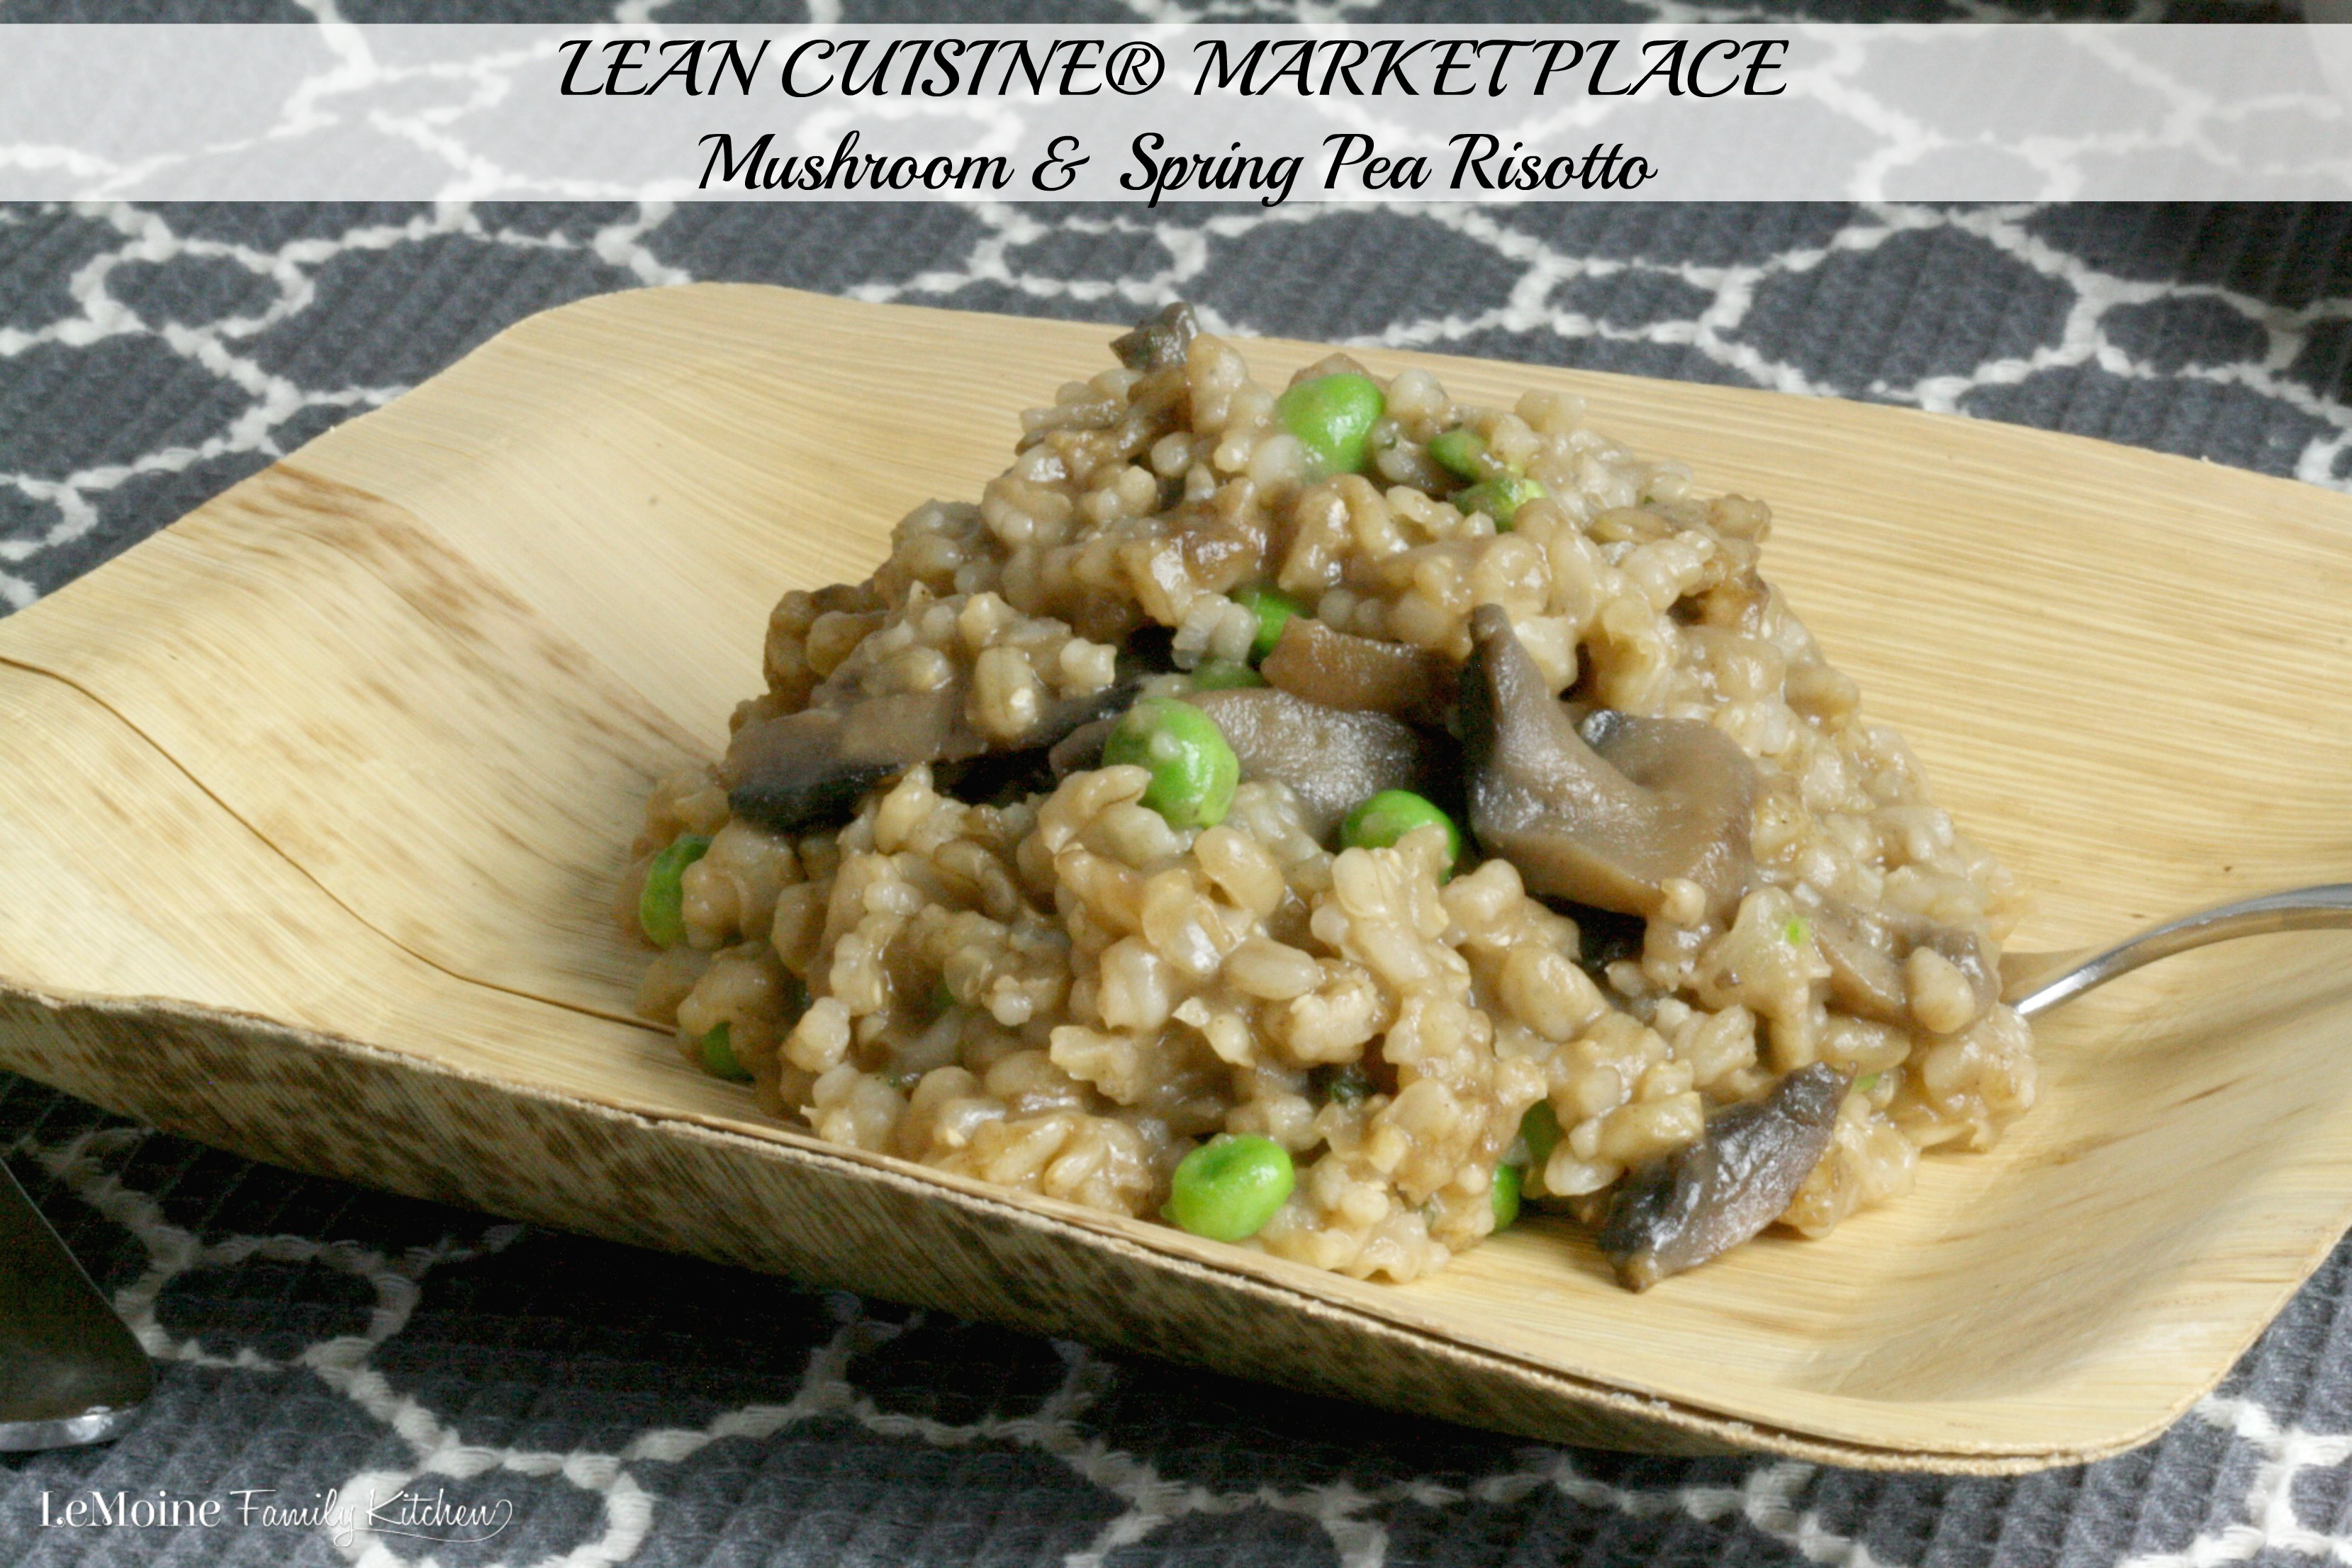 LEAN CUISINE® MARKETPLACE Mushroom & Spring Pea Risotto | LeMoine Family Kitchen. Working easy options into my life to keep things healthy. #NourishWhatMatters #ad